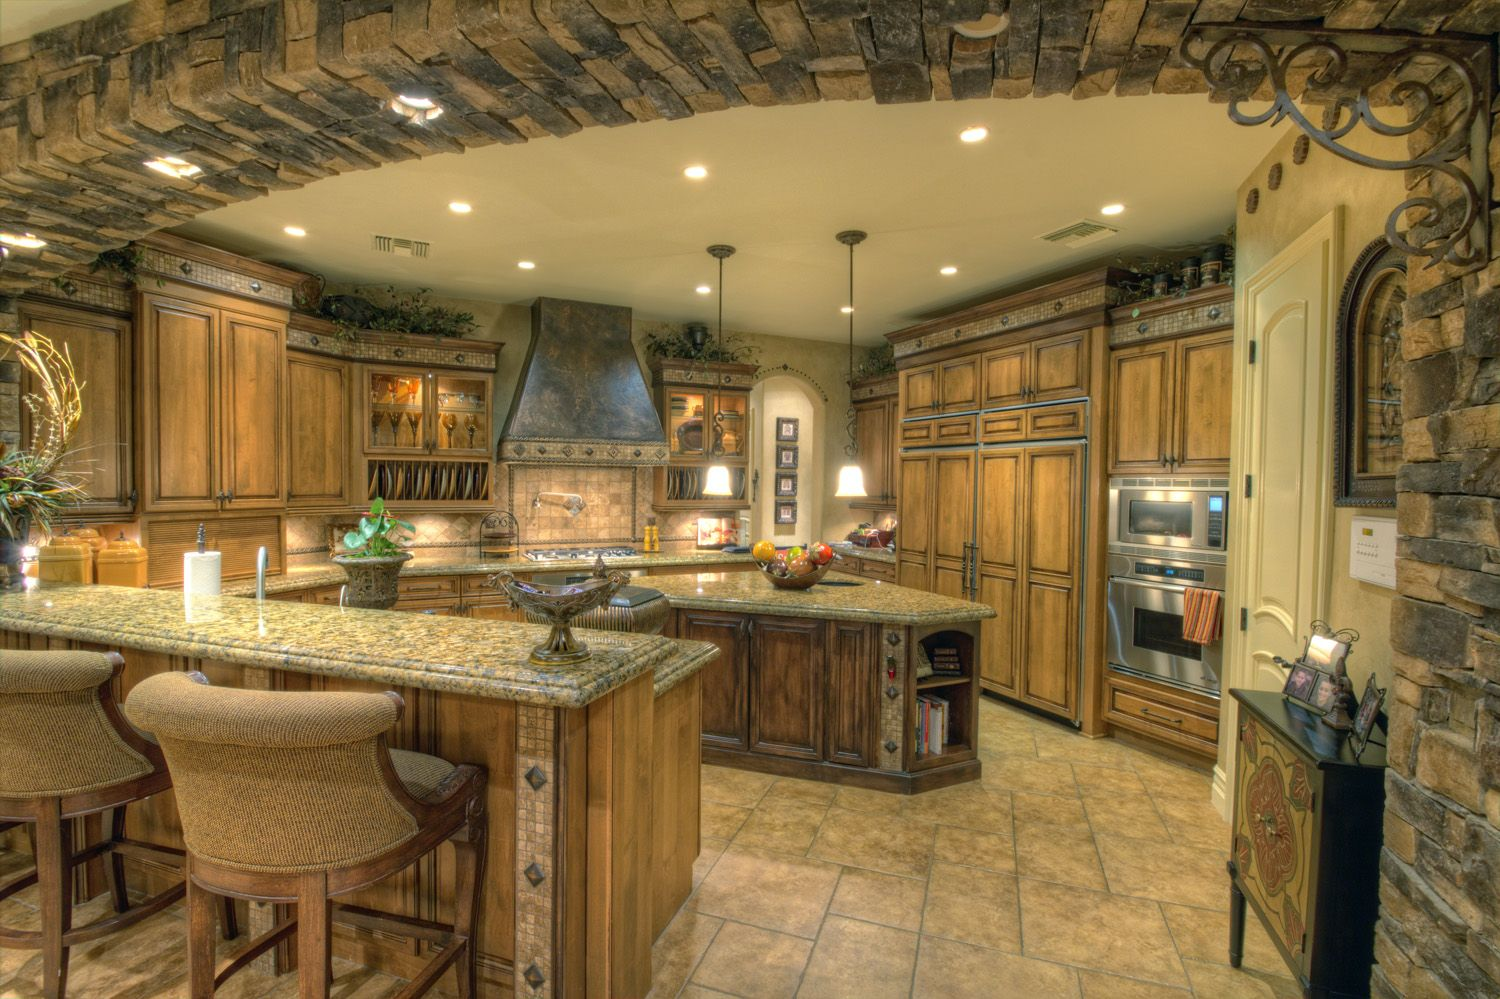 Luxury kitchens luxury estate designer for Luxury kitchen layout